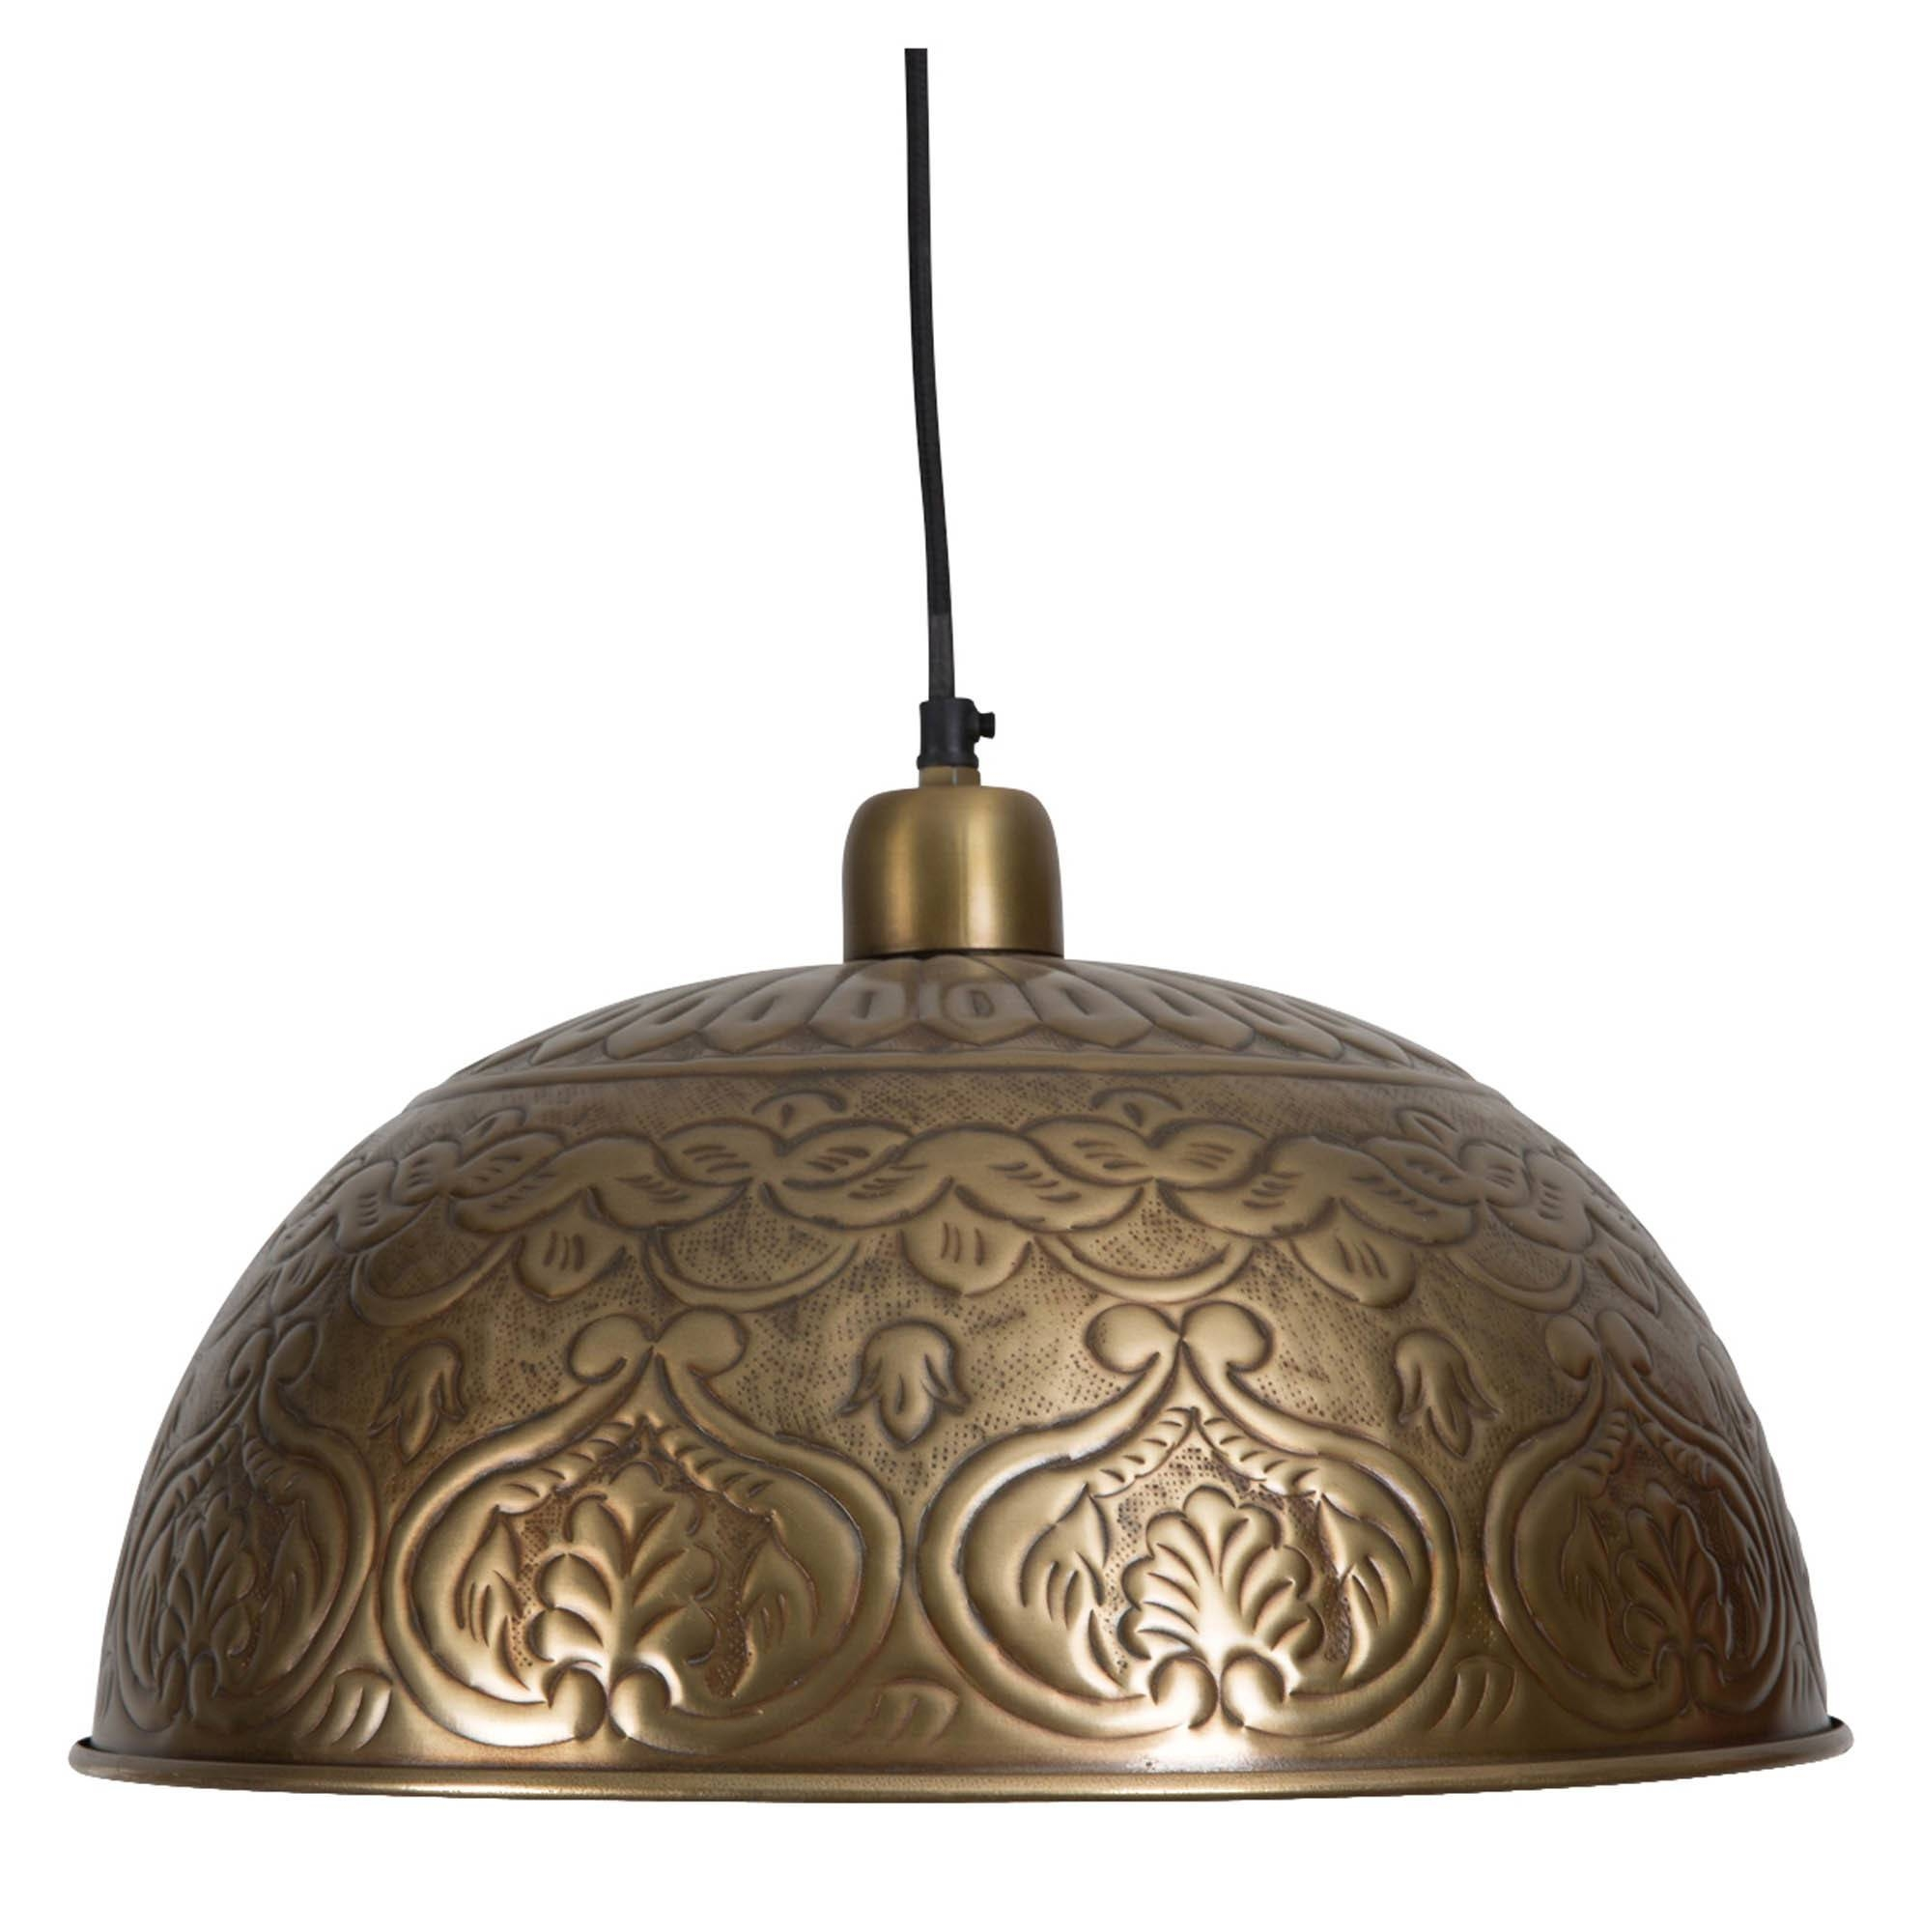 Lamp: Bohemian Lamp | Moroccan Pendant Light | Farmhouse Light regarding Hammered Pendant Lights (Image 7 of 15)